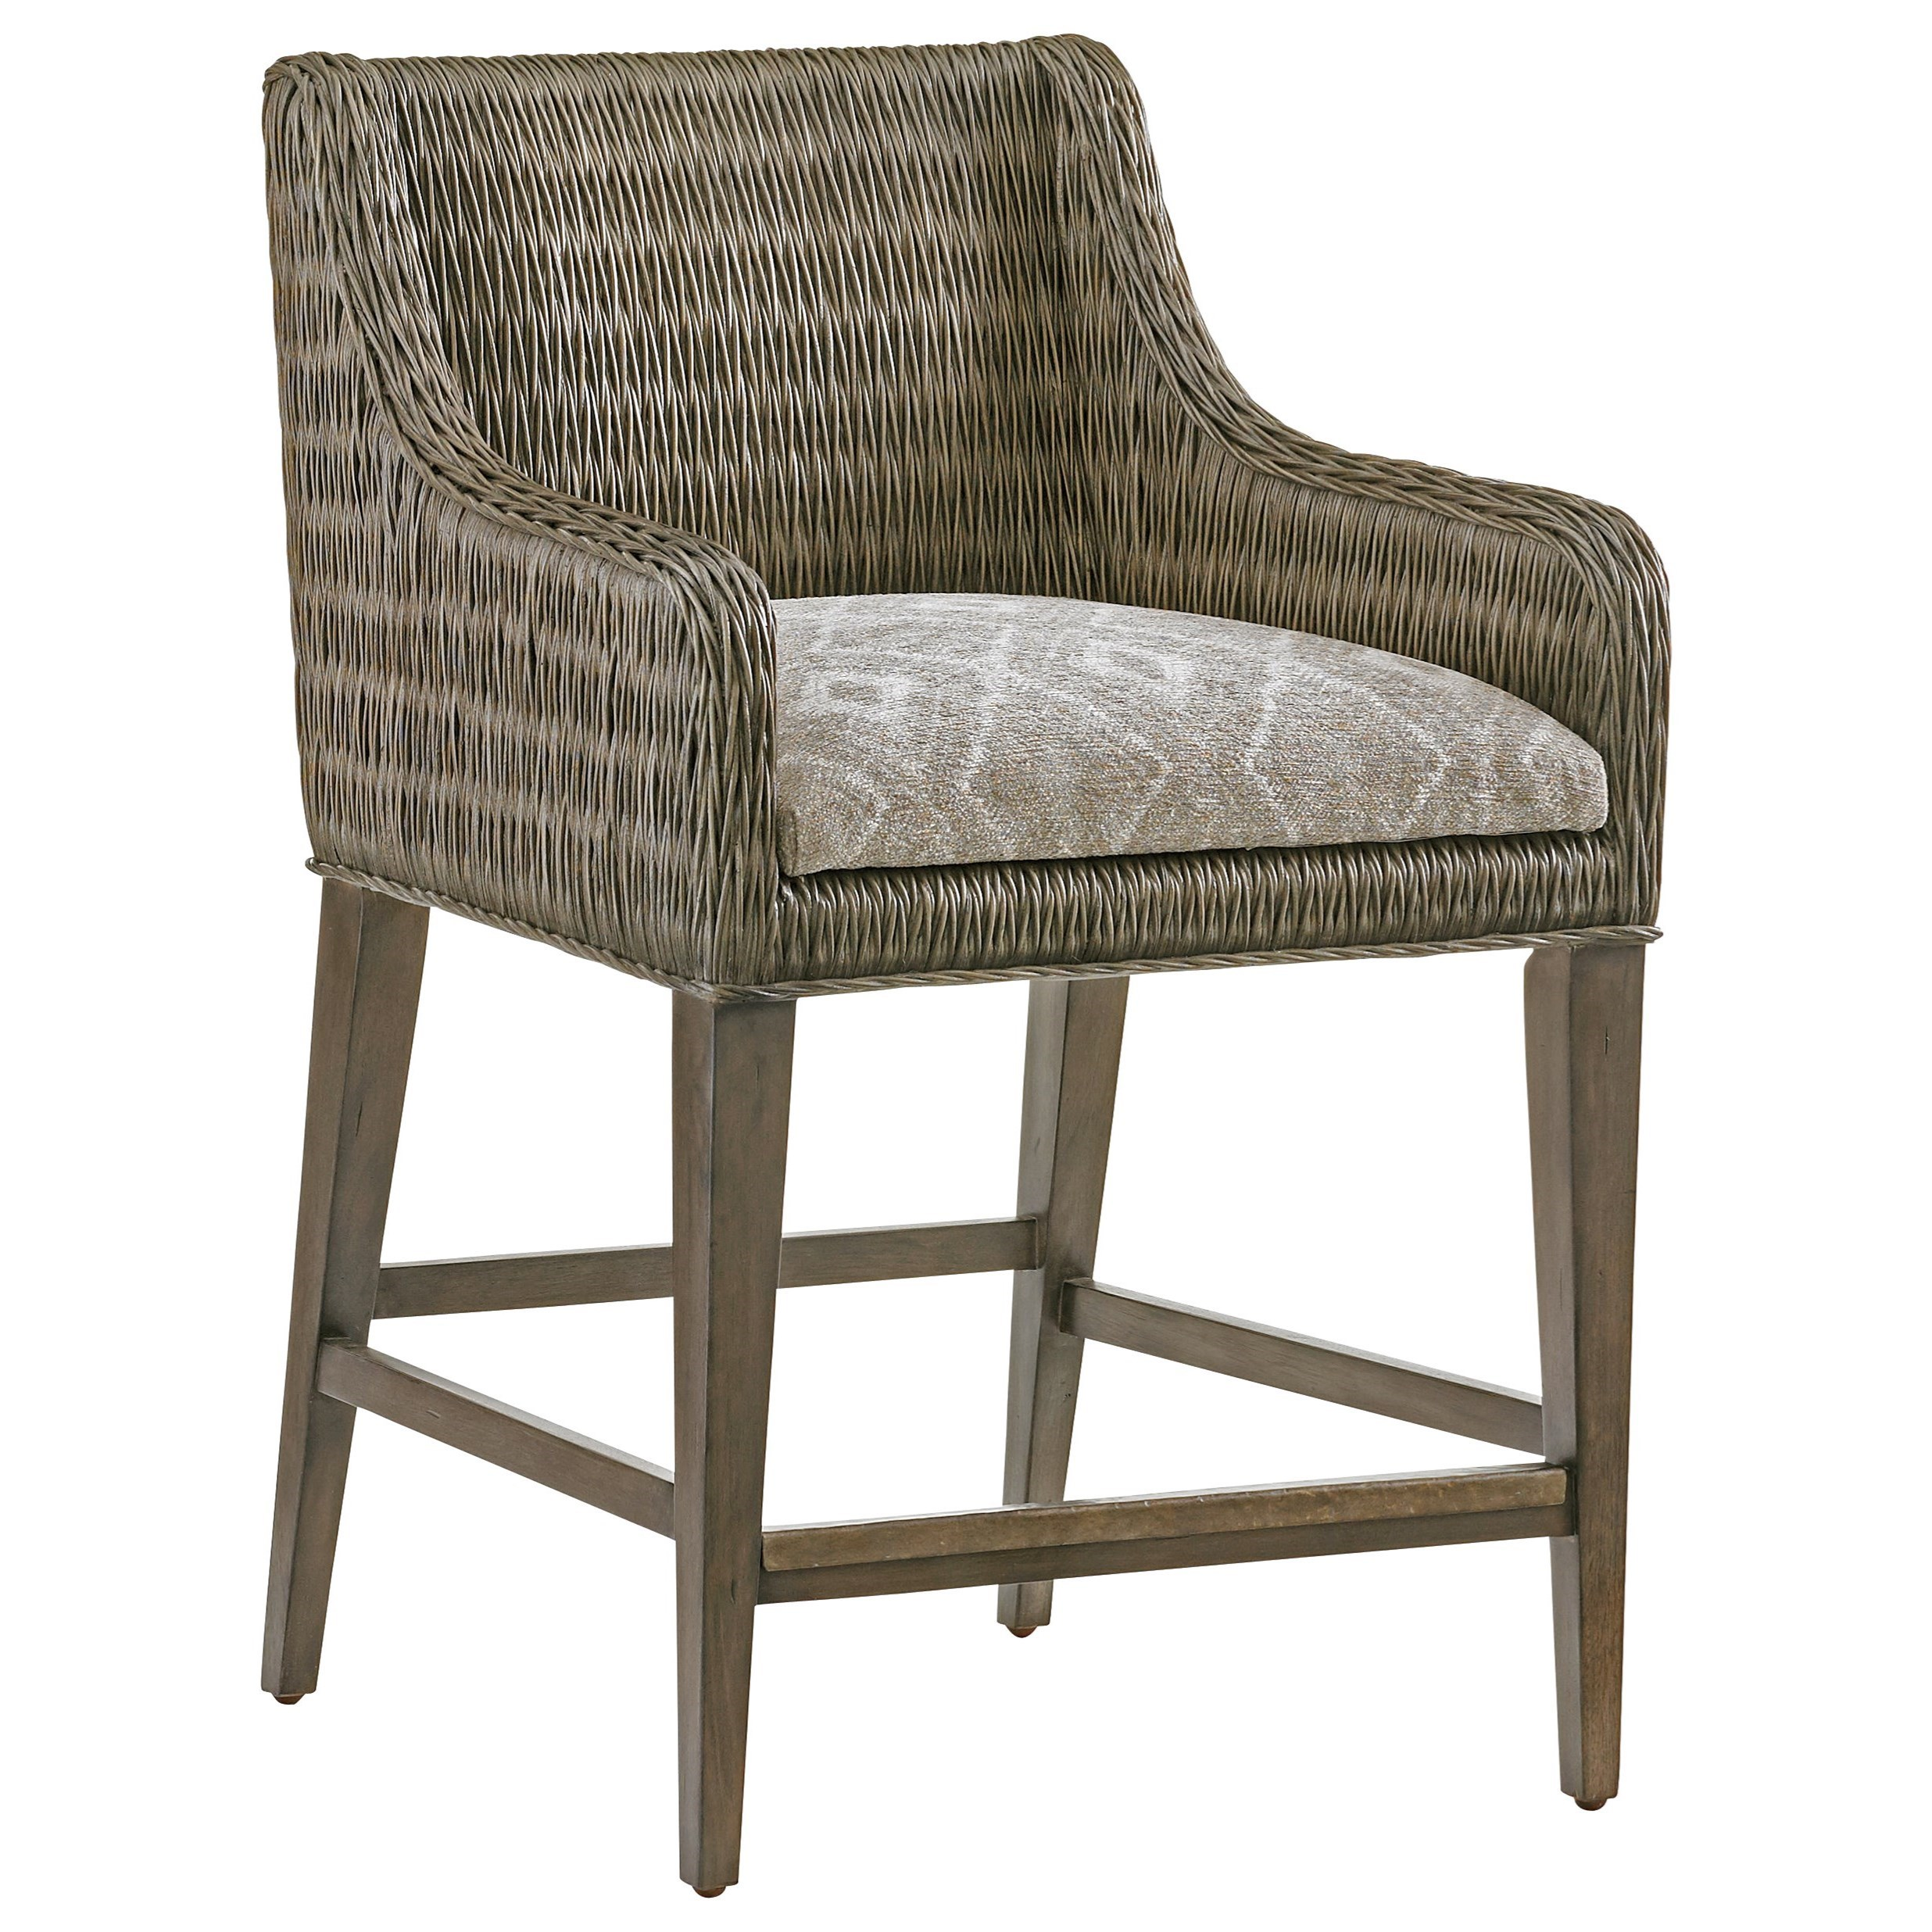 Tommy Bahama Home Cypress Point Turner Woven Rattan